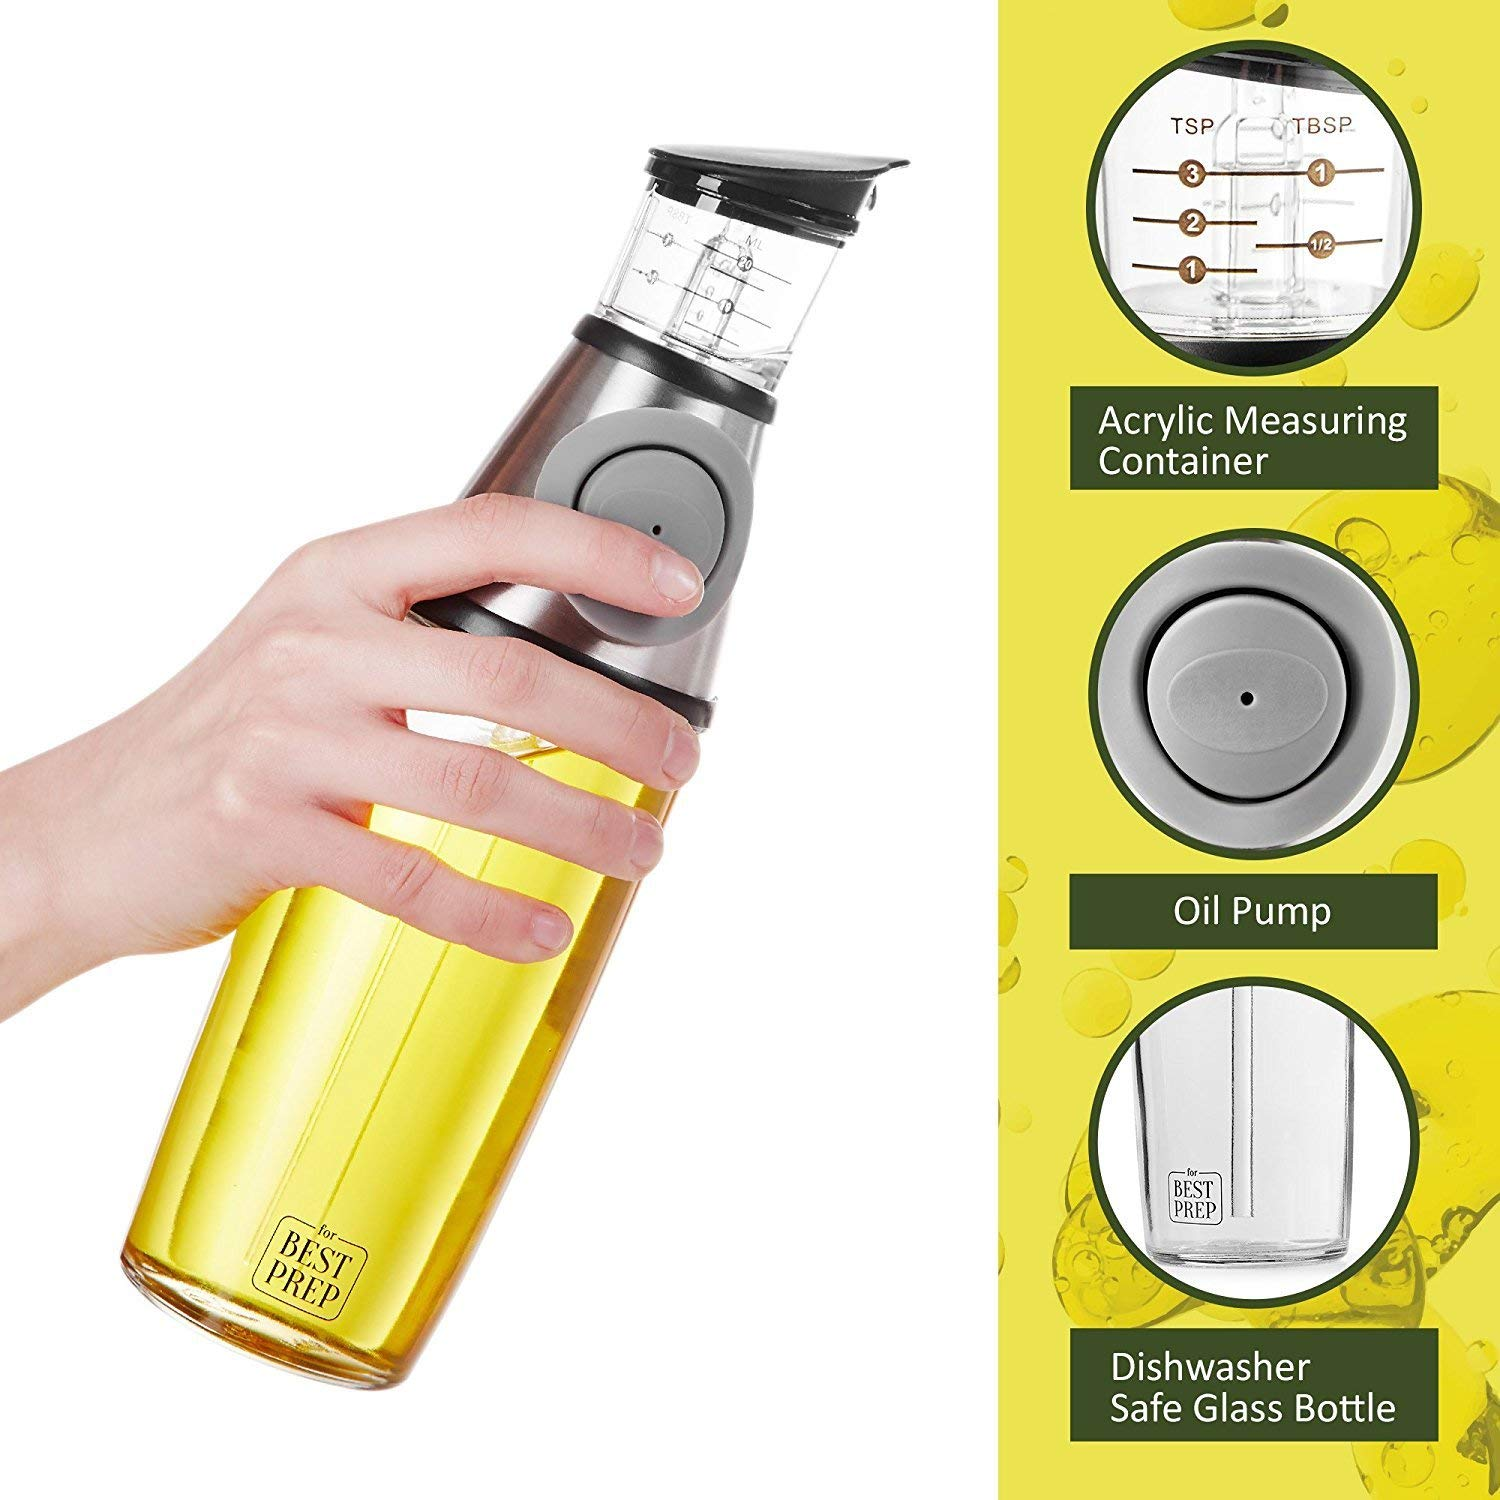 For Best Prep Olive oil dispenser - Olive oil bottle - Vinegar and soy sauce dispenser 17 oz or 500 ml capacity – any simple syrup fits - for all your cooking purposes